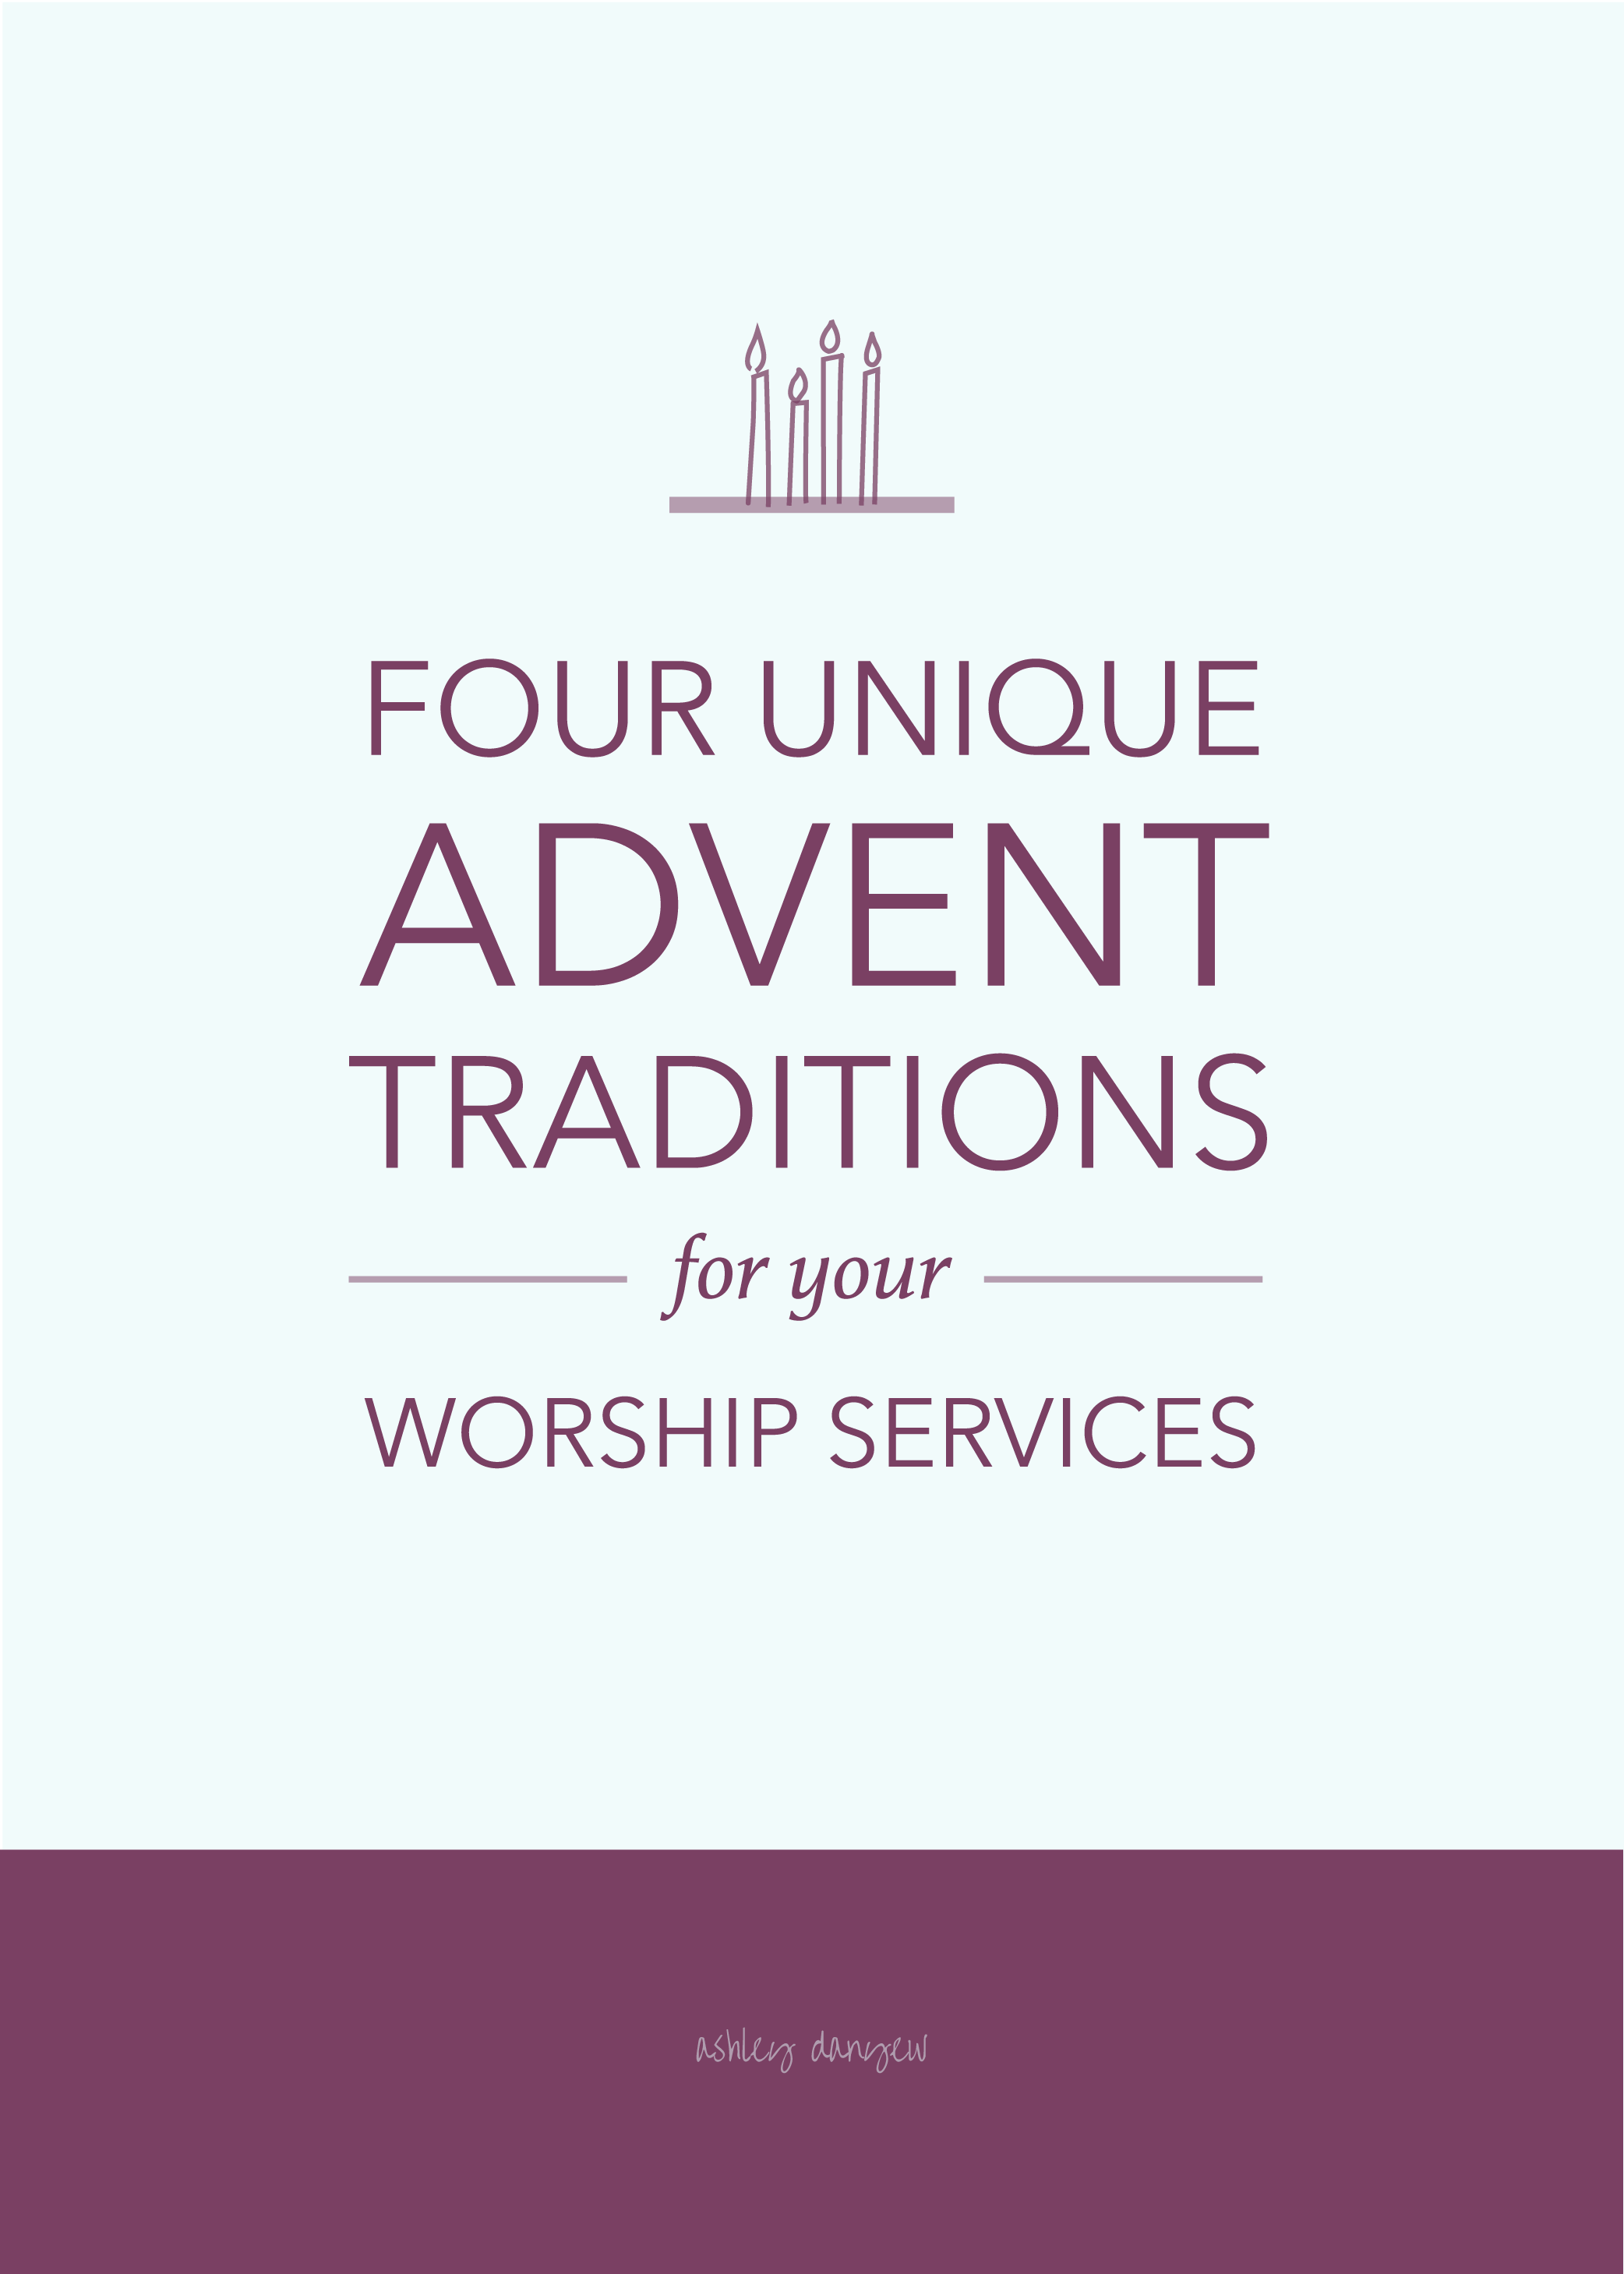 Four Unique Advent Traditions for Your Worship Services-55.png